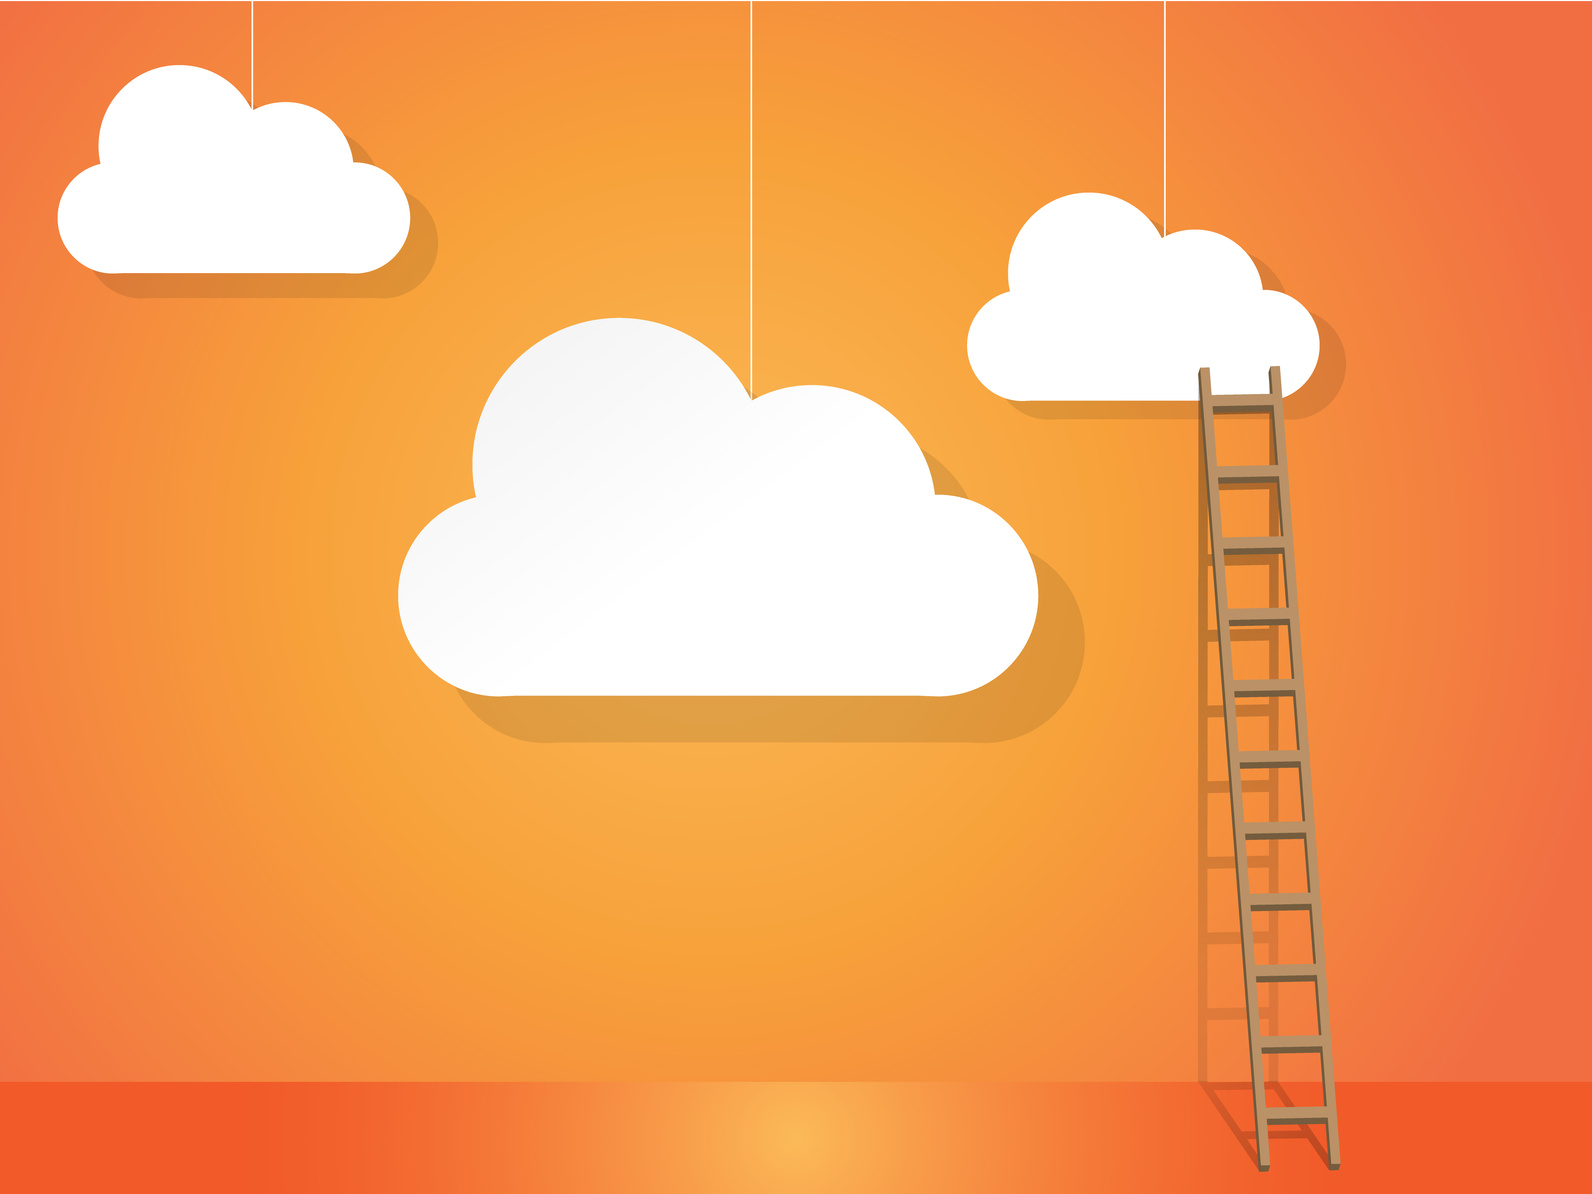 Costruire business sopra la nuvola, appuntamento al Cloud Computing Summit The Innovation Group